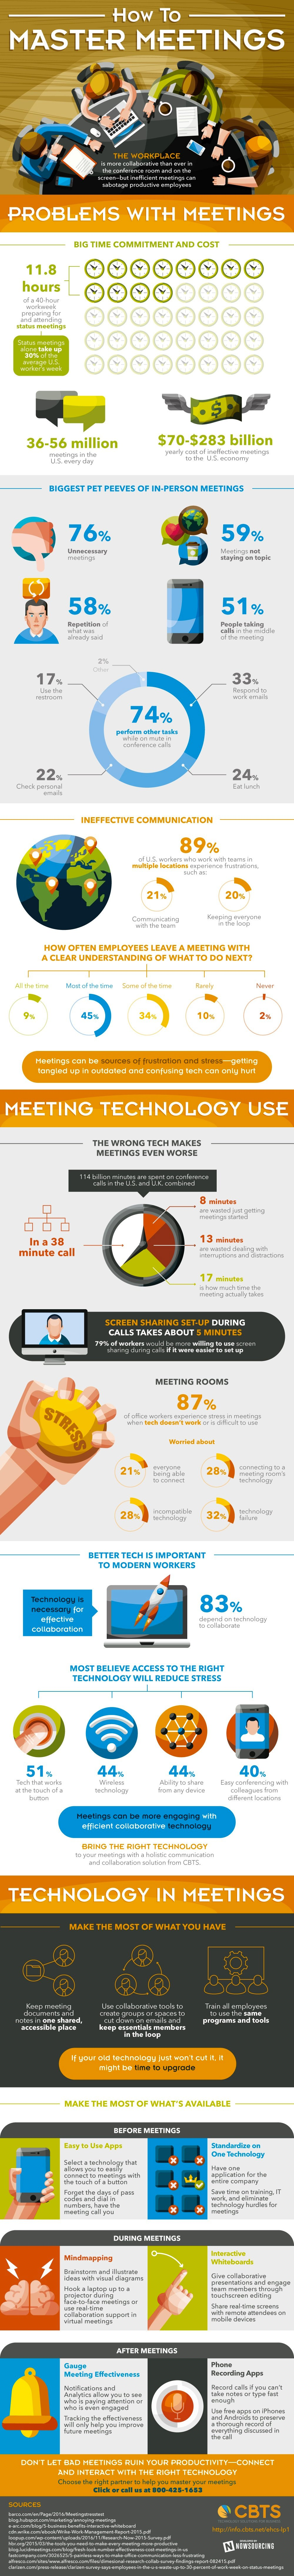 become master of meetings infographic